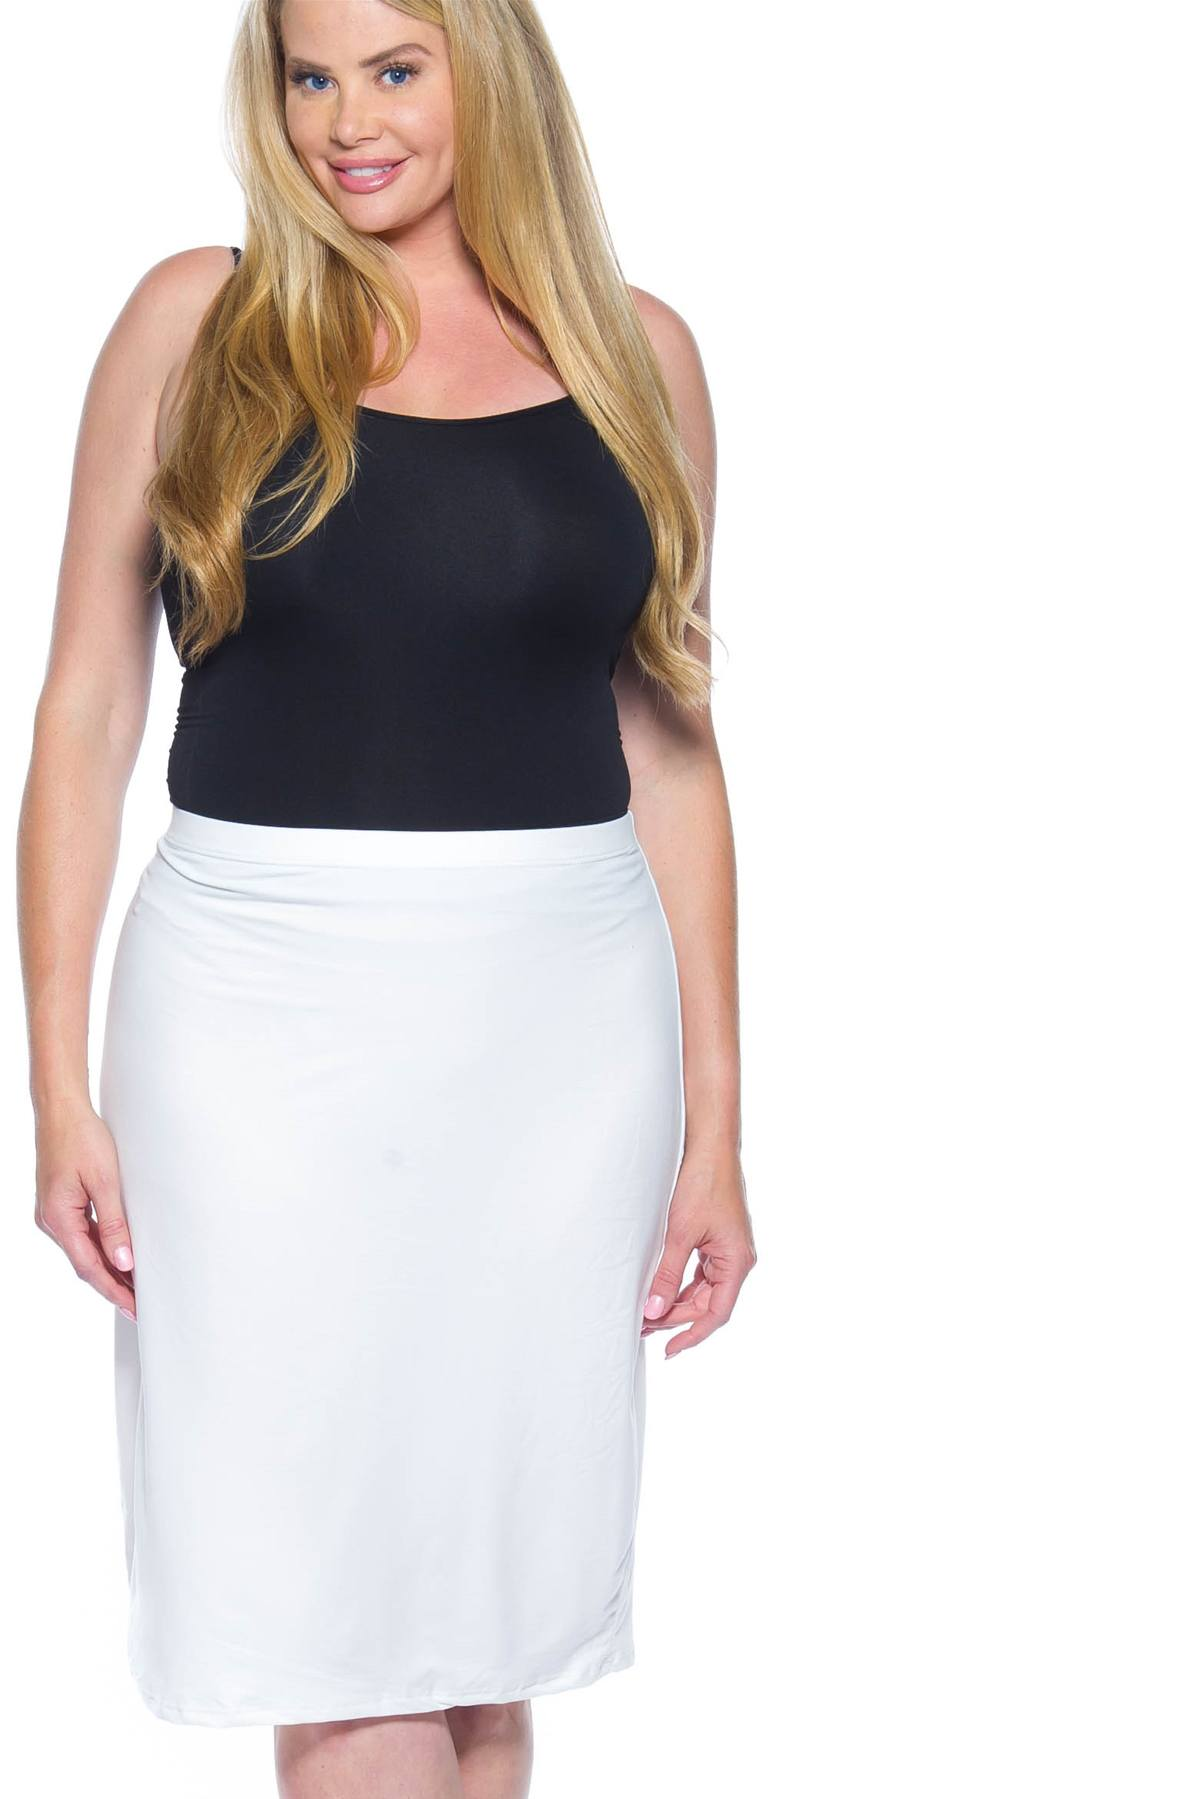 Ladies fashion plus size white pencil skirt